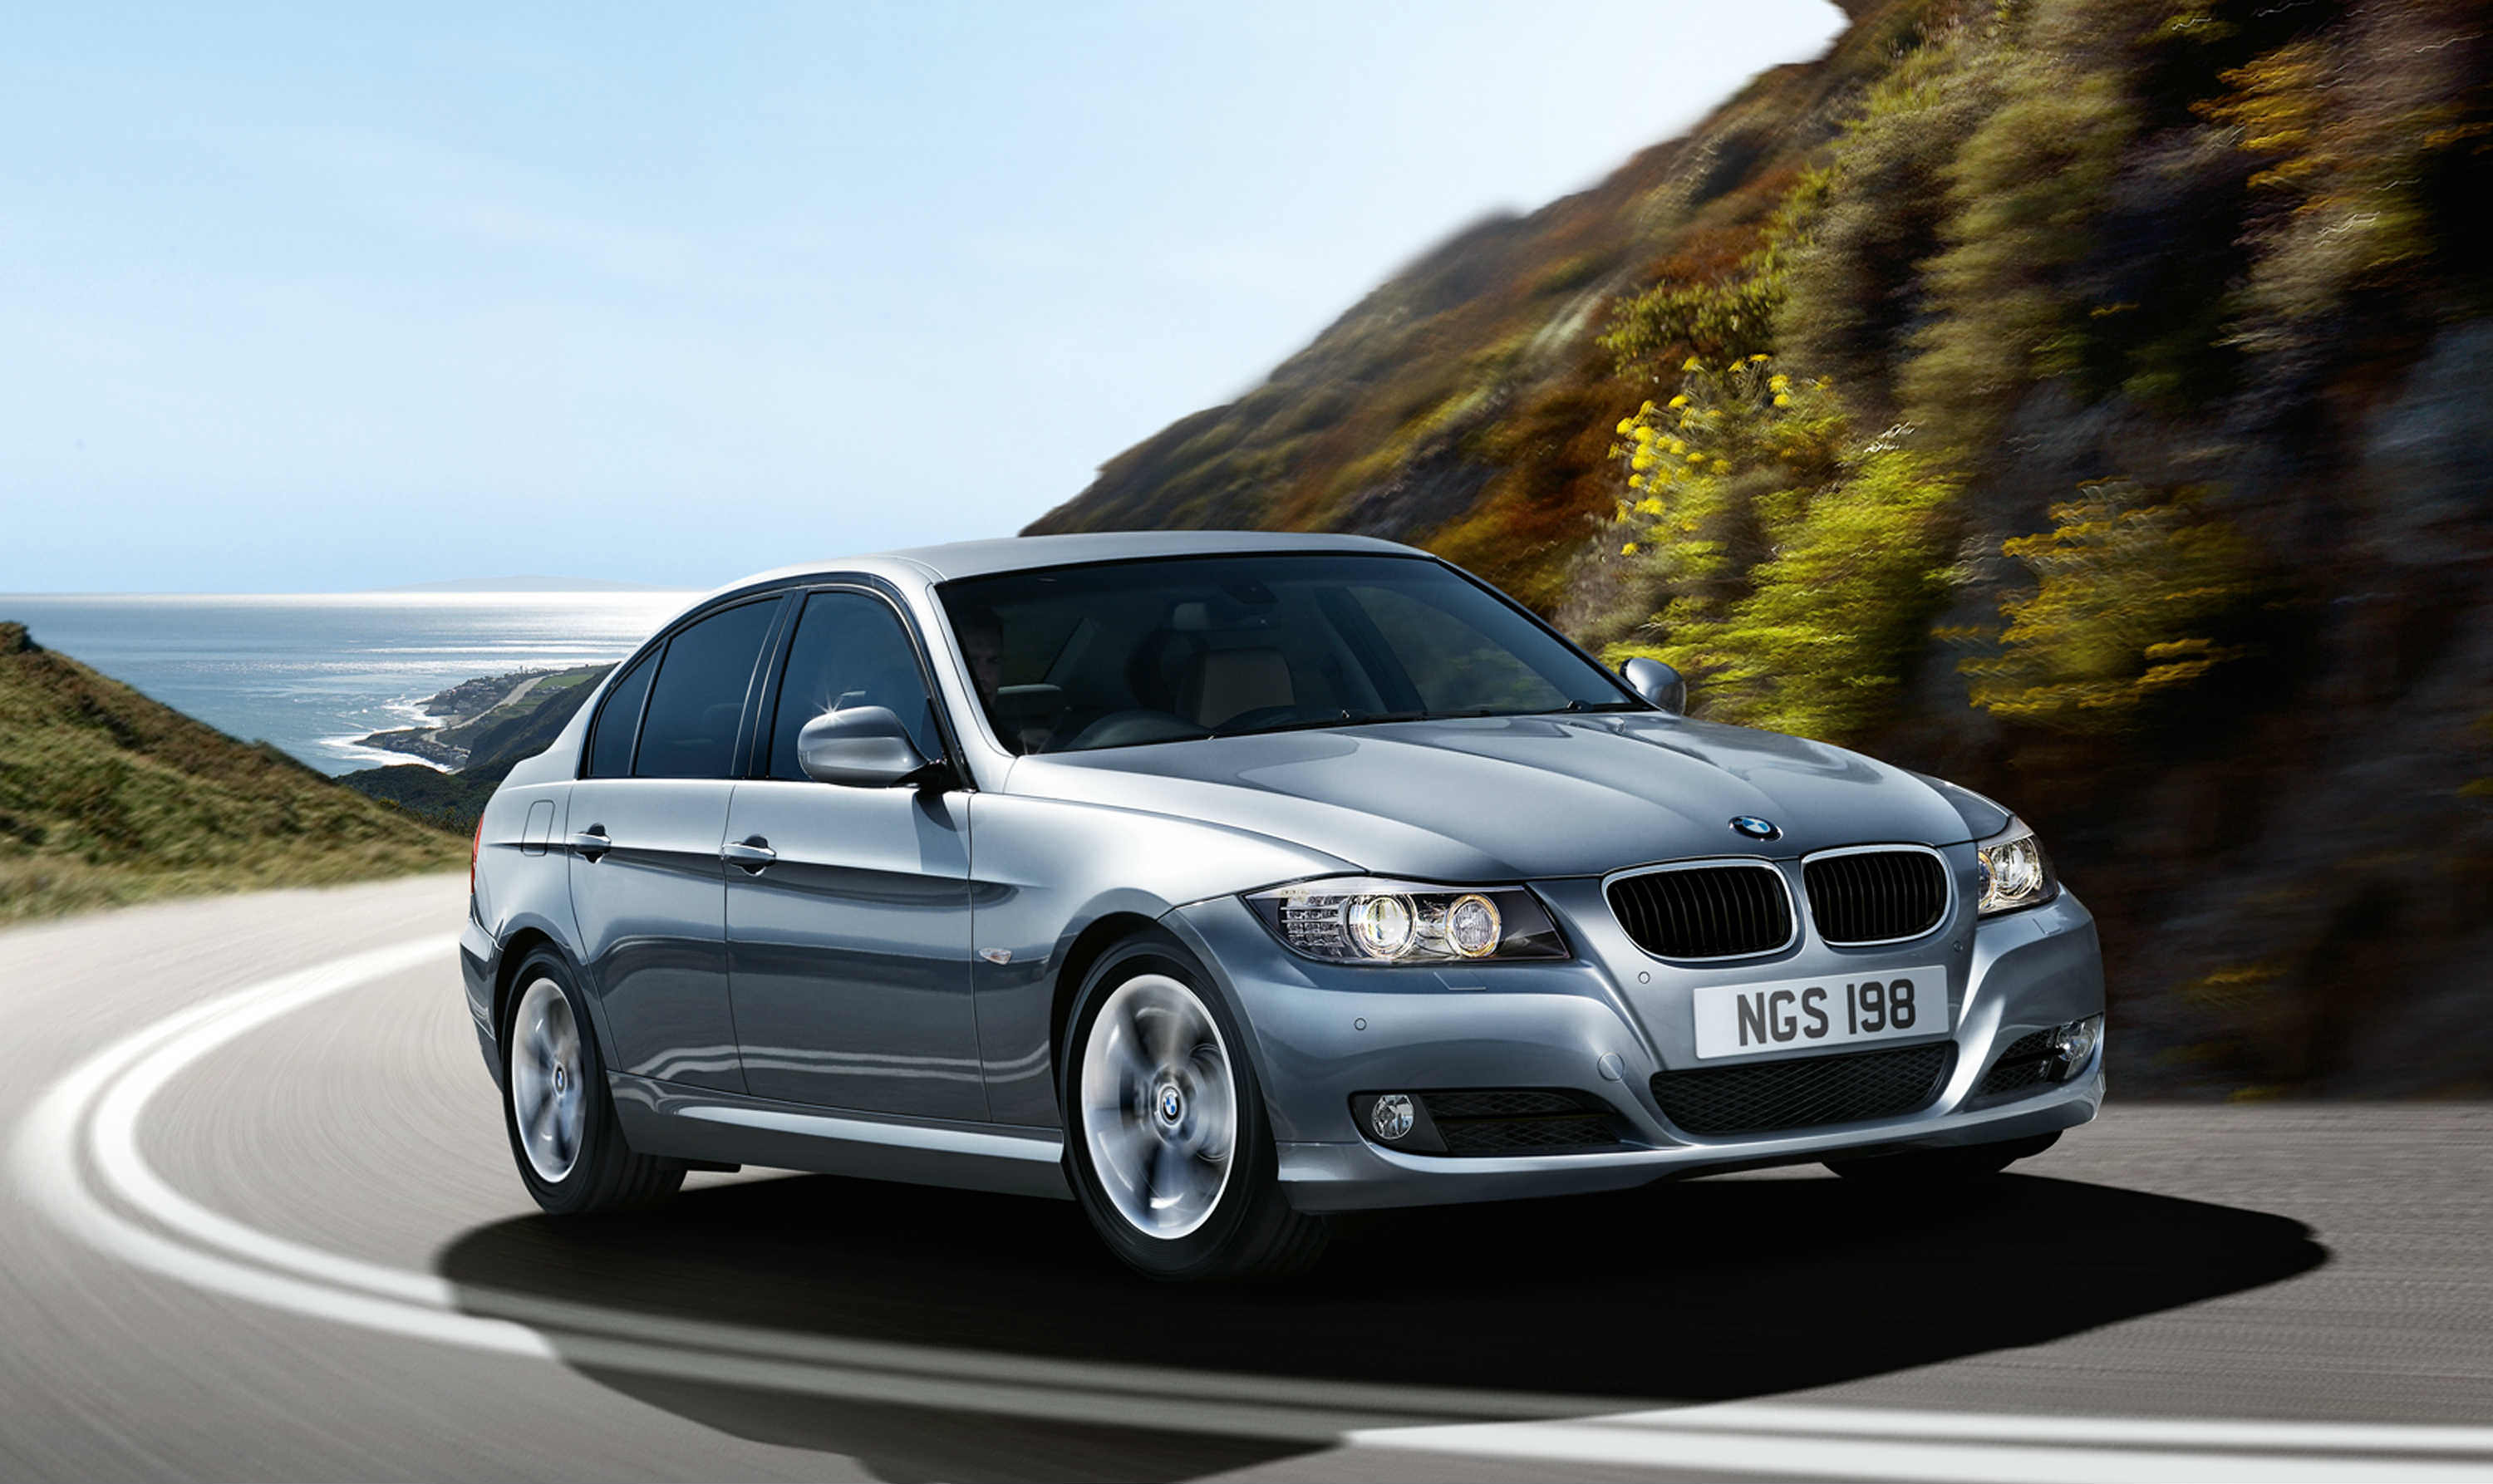 Silver BMW series 3 recall car